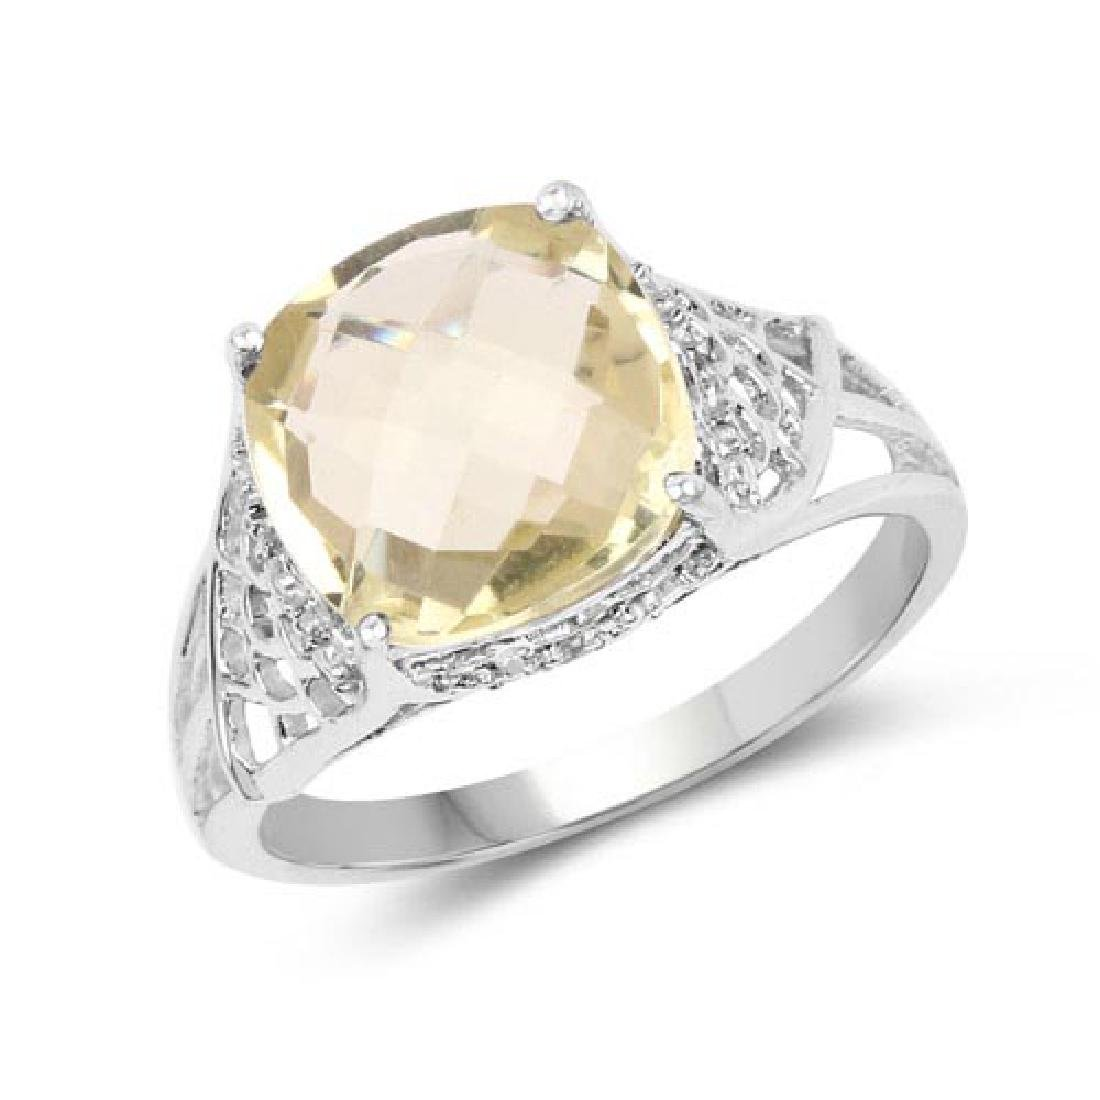 3.45 Carat Genuine Lemon Quartz and White Topaz .925 St